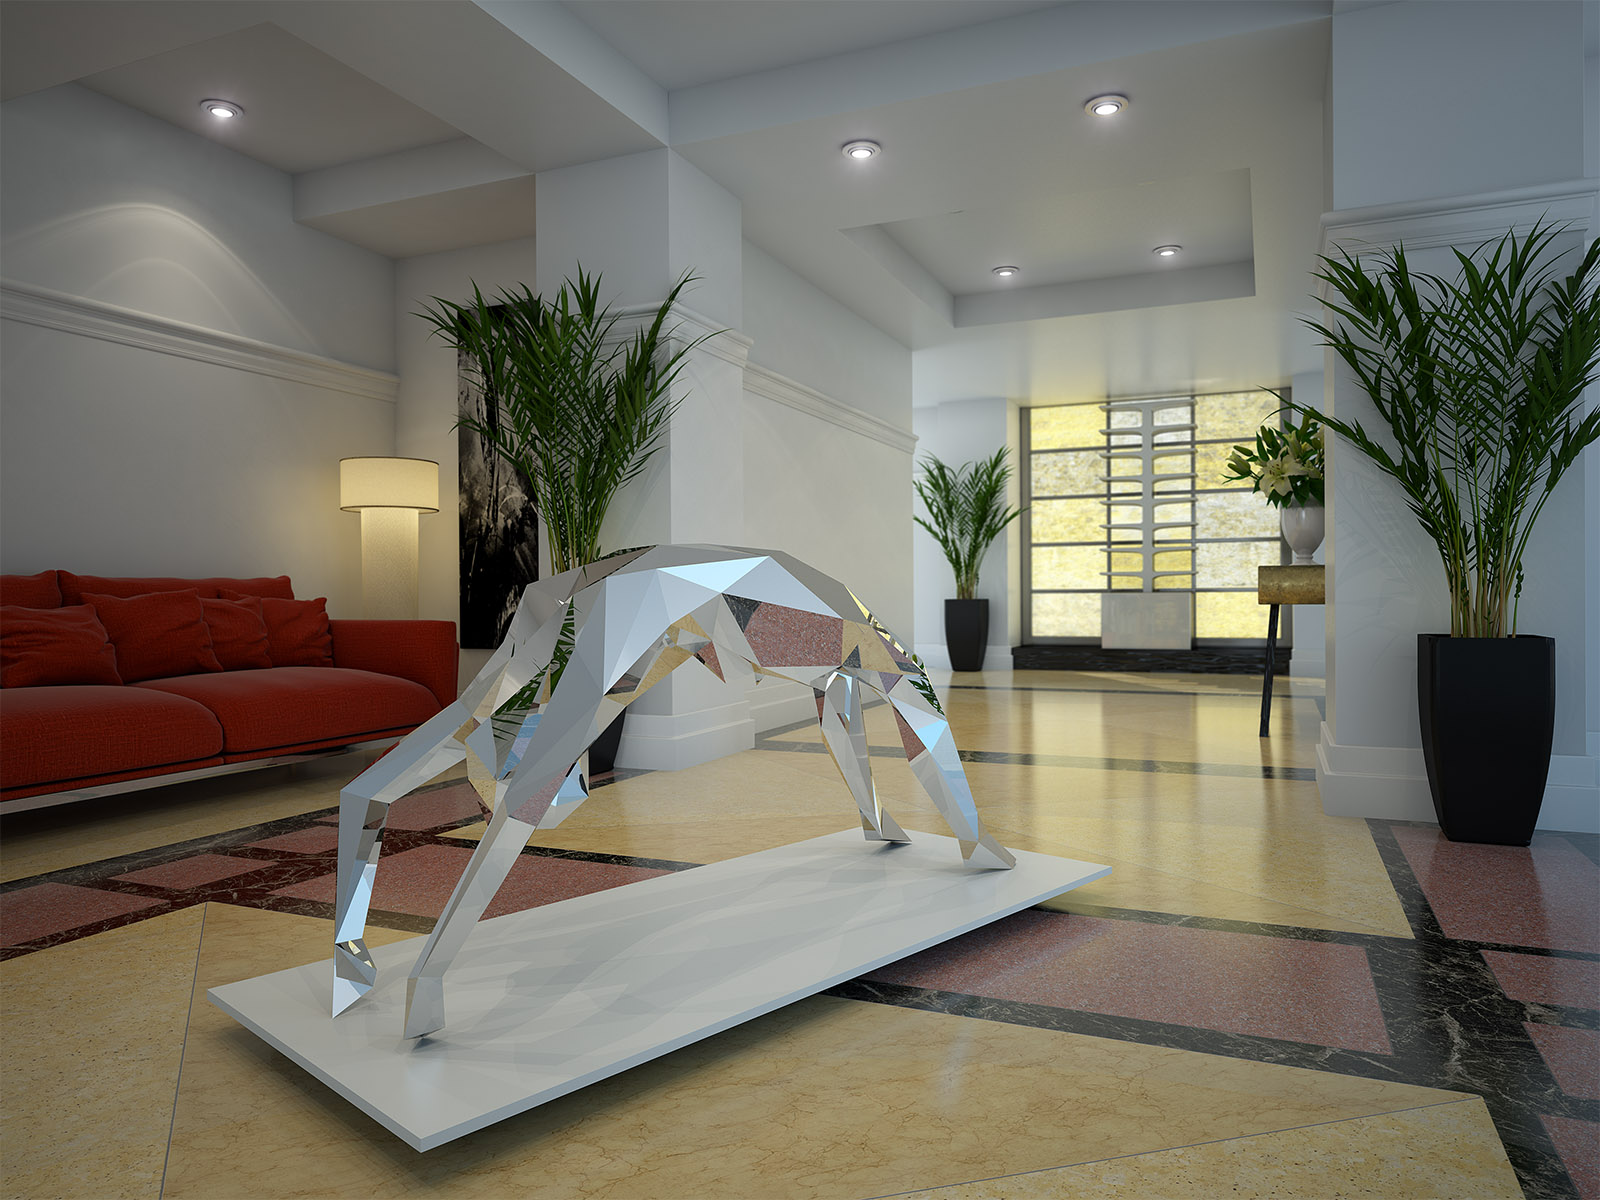 A photo-realistic 3d render of a sculpture inside a hotel lobby area, created by 3drenders.co.uk using 3DS Max and V-Ray.